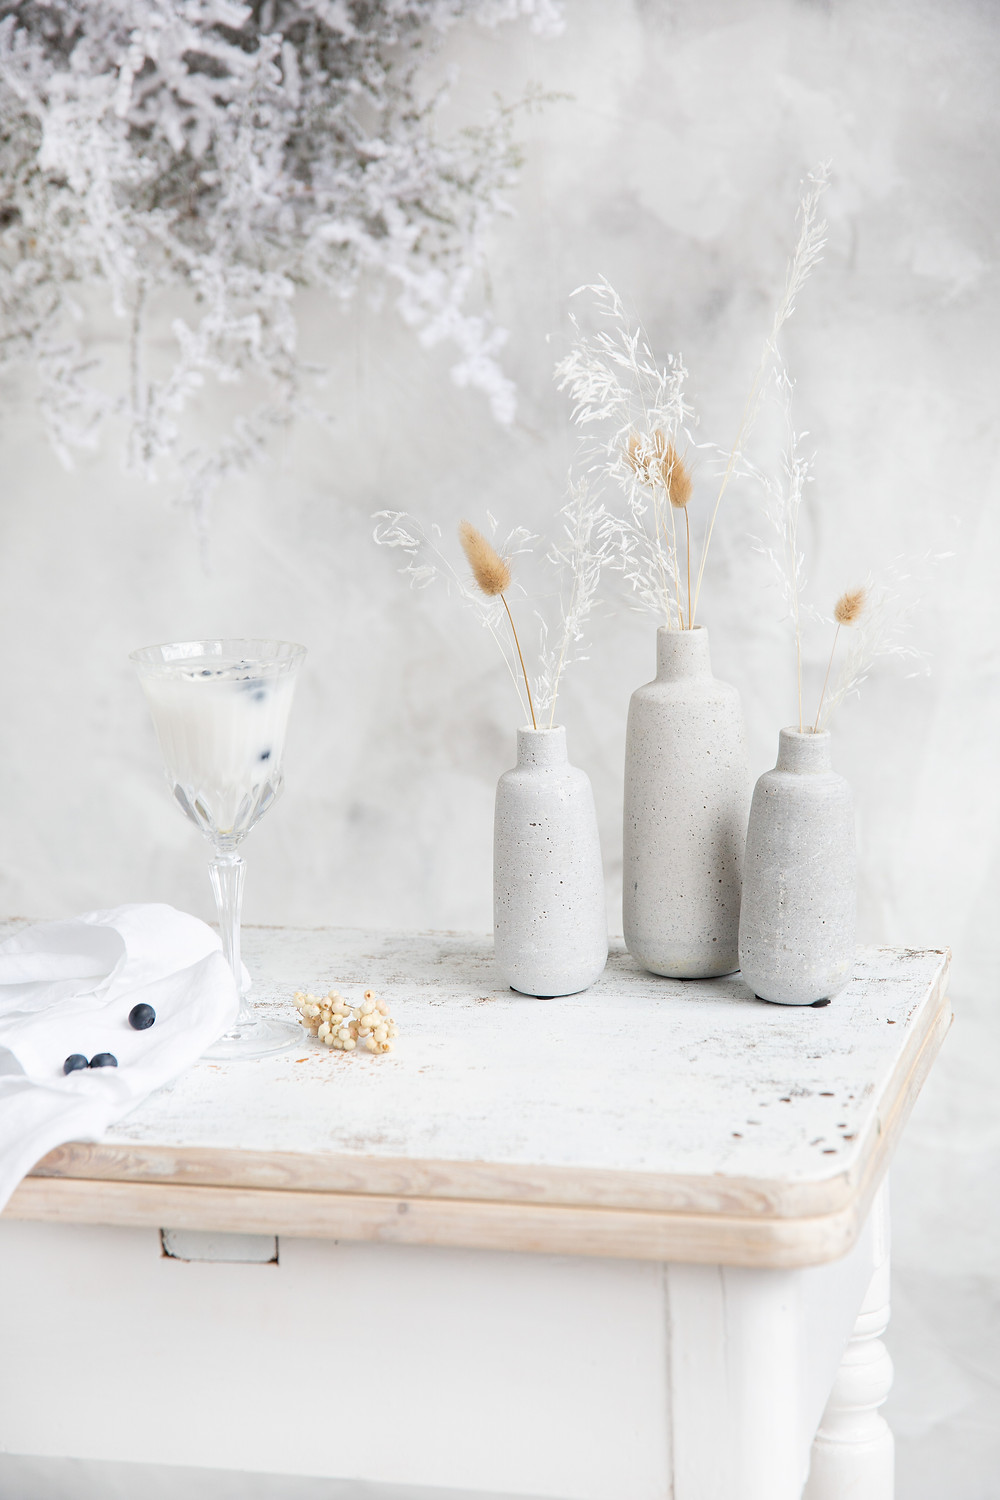 winter decorations in white and blue